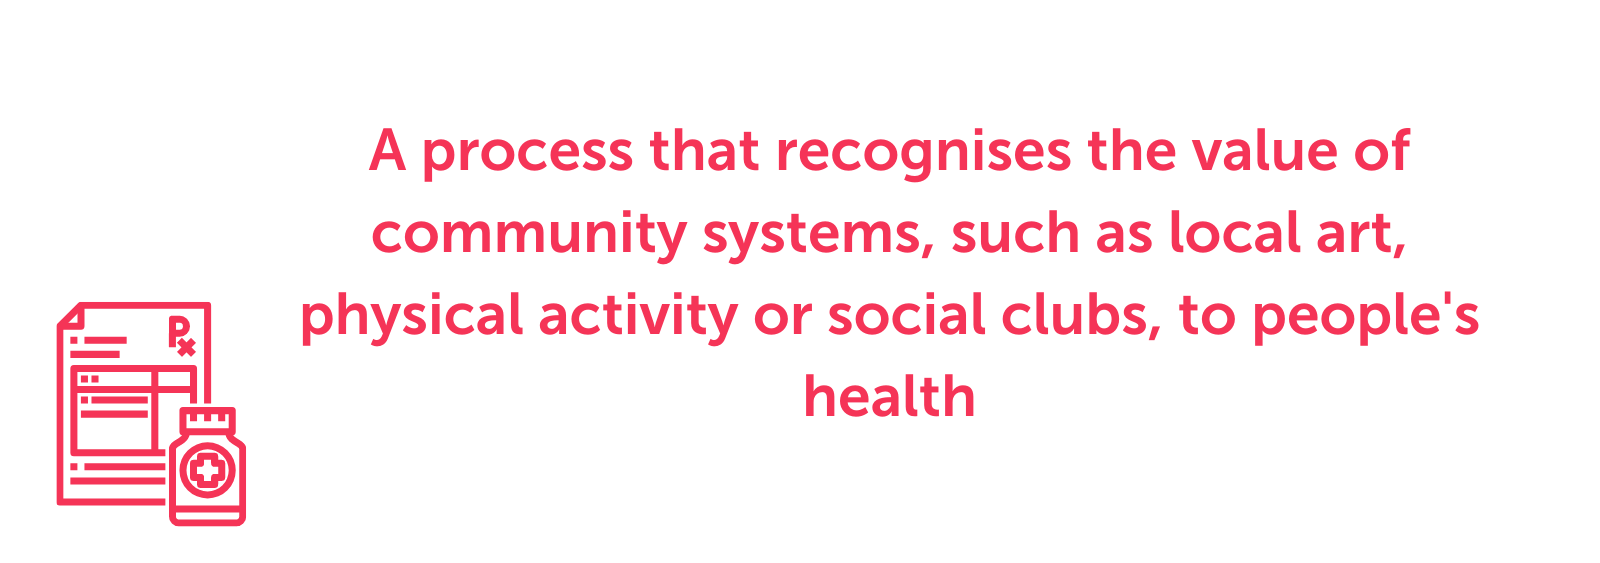 A process that recognises the value of community systems, such as local art, physical activity or social clubs, to people's health